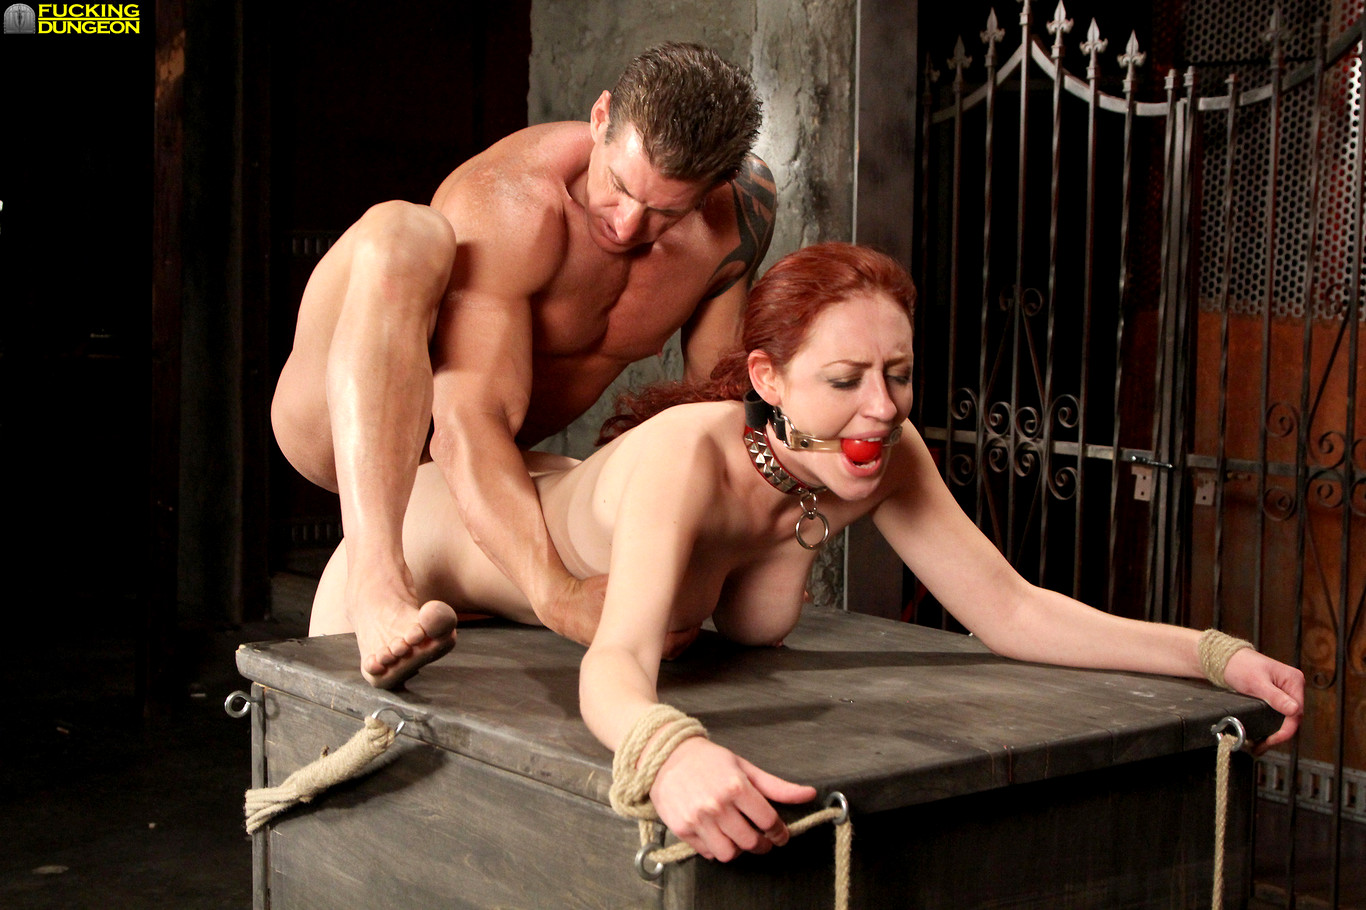 dungeon-fuck-anmals-nudesexxxy-videos